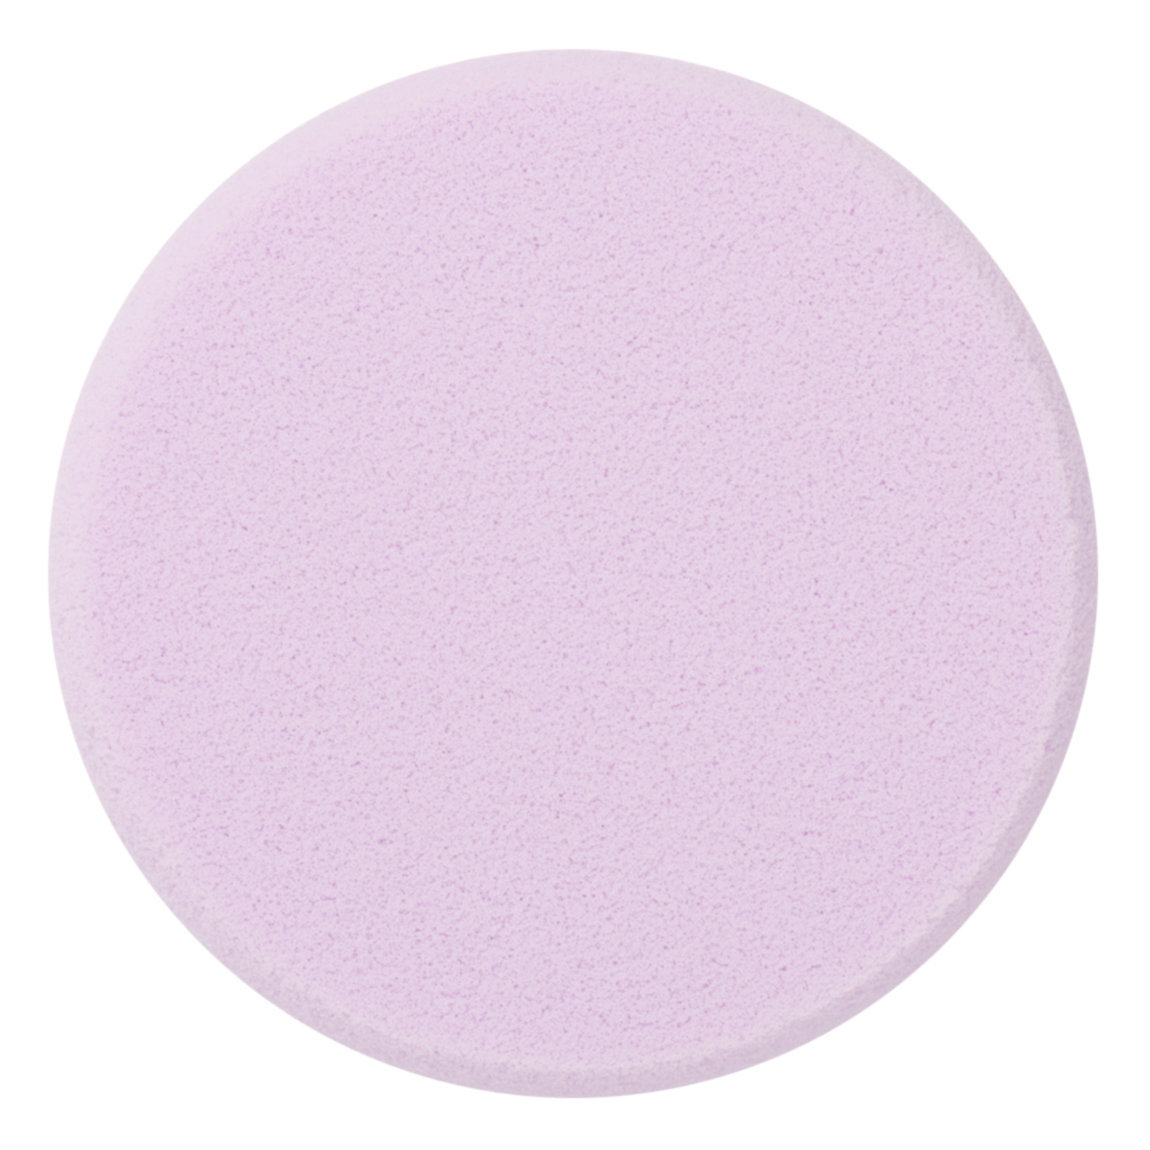 Anna Sui Makeup Sponge alternative view 1 - product swatch.